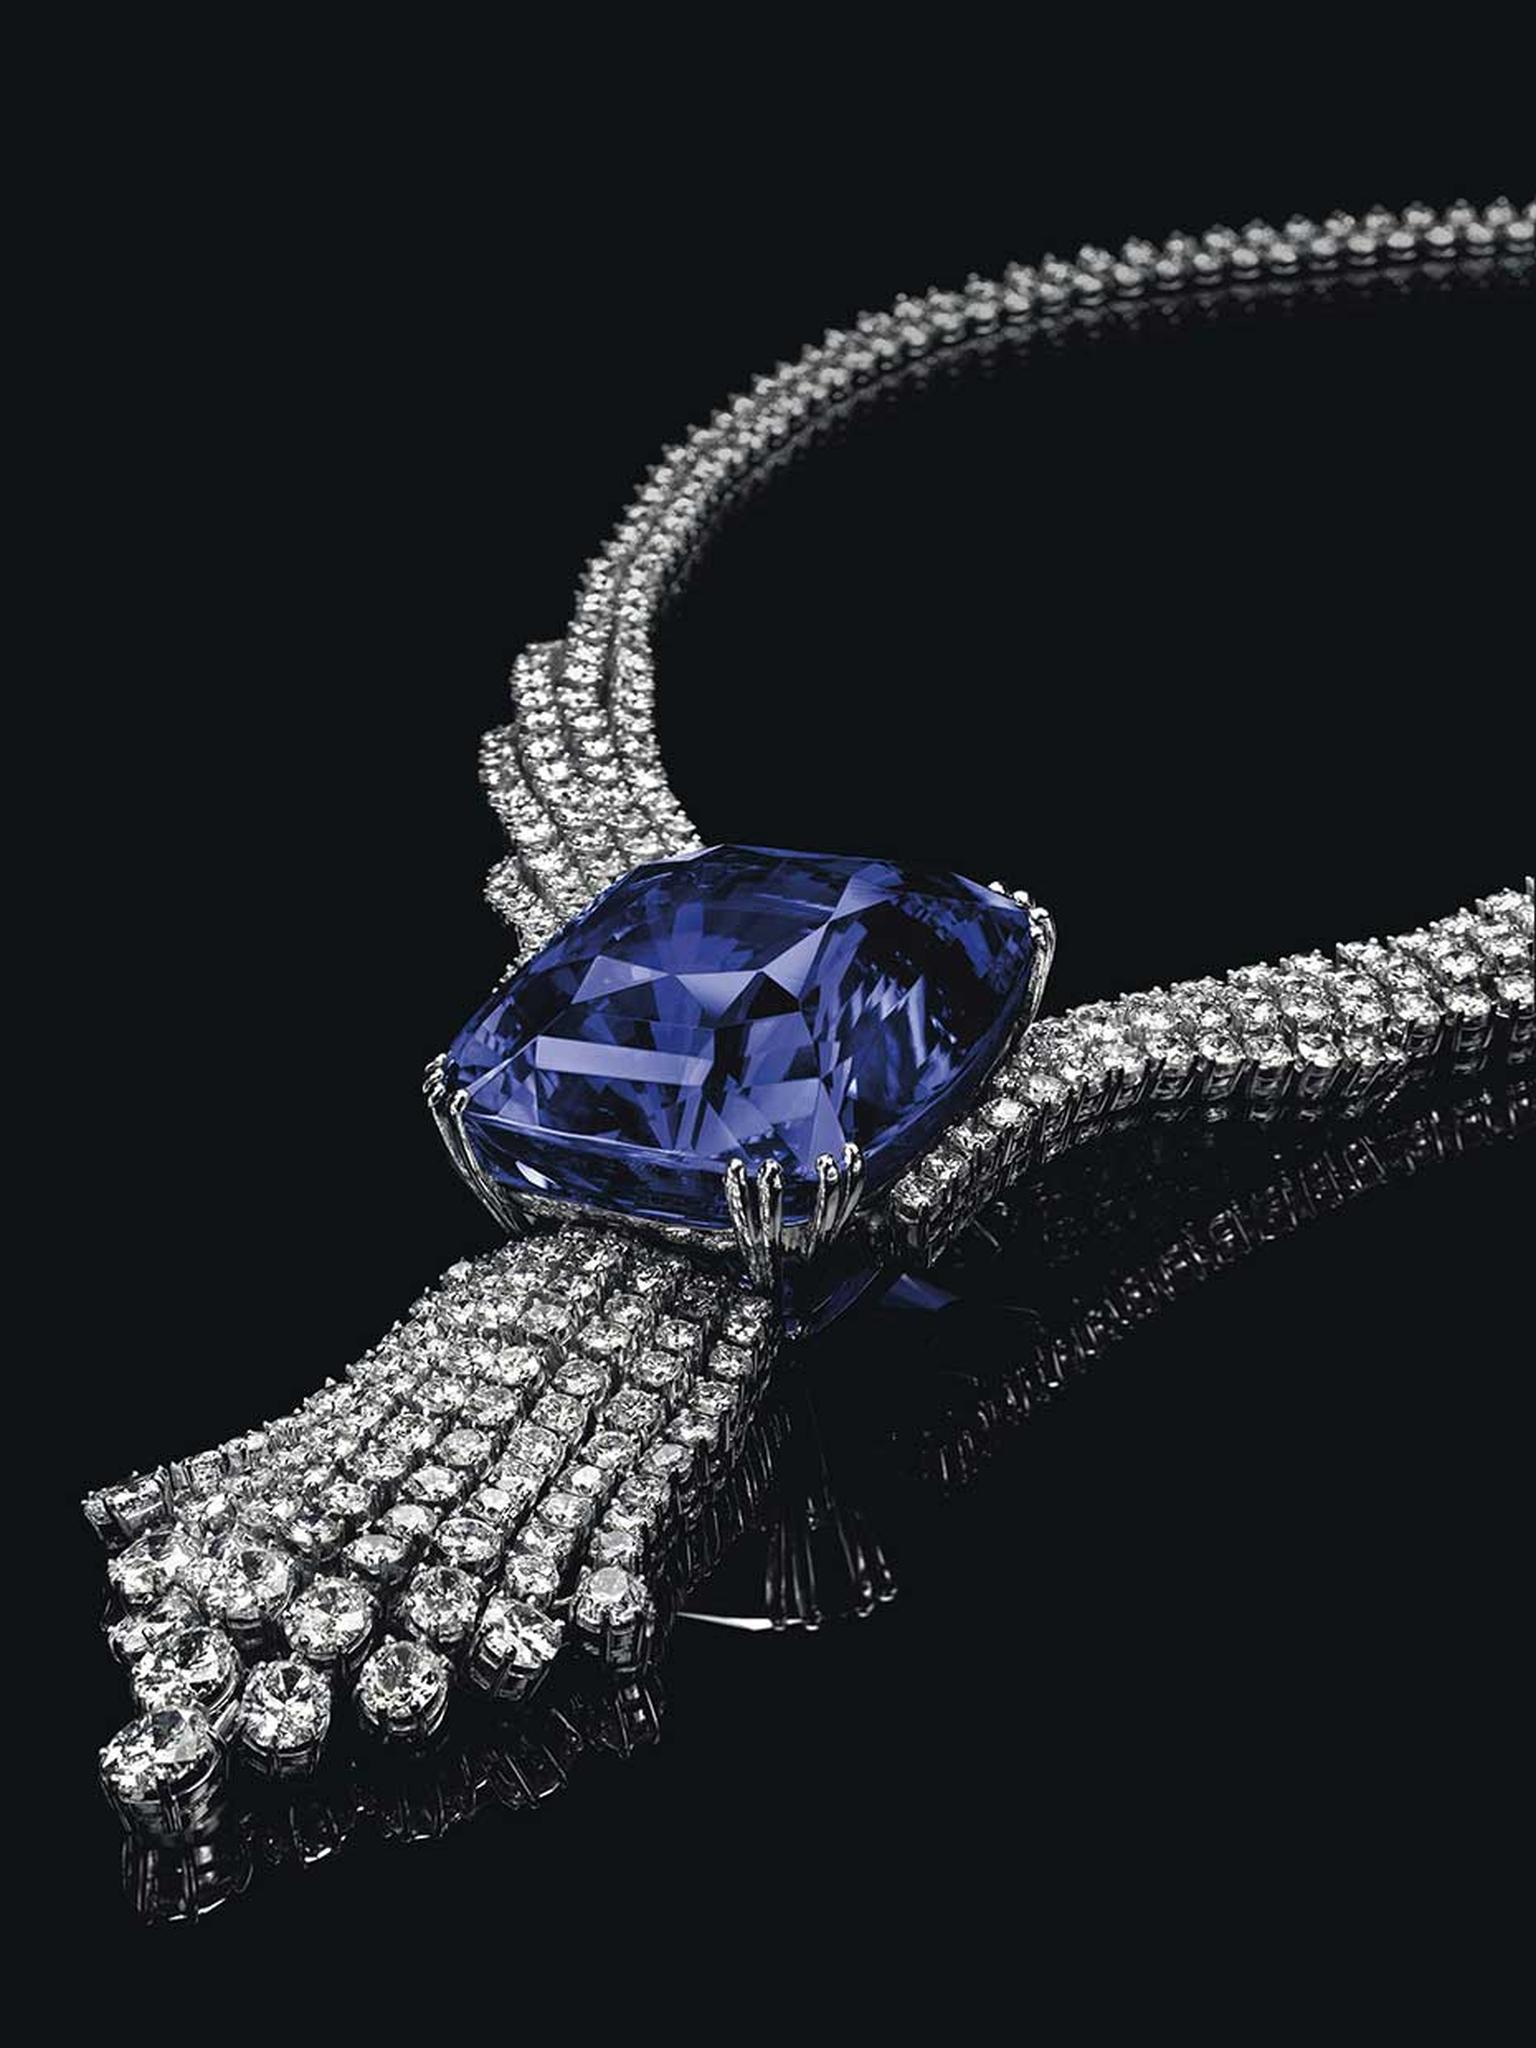 At Christie's Magnificent Jewels Sale in Geneva on 11 November 2014, the 392.52ct Blue Belle of Asia sapphire necklace sold for $17.2 million, setting a new world record for any sapphire sold at auction.